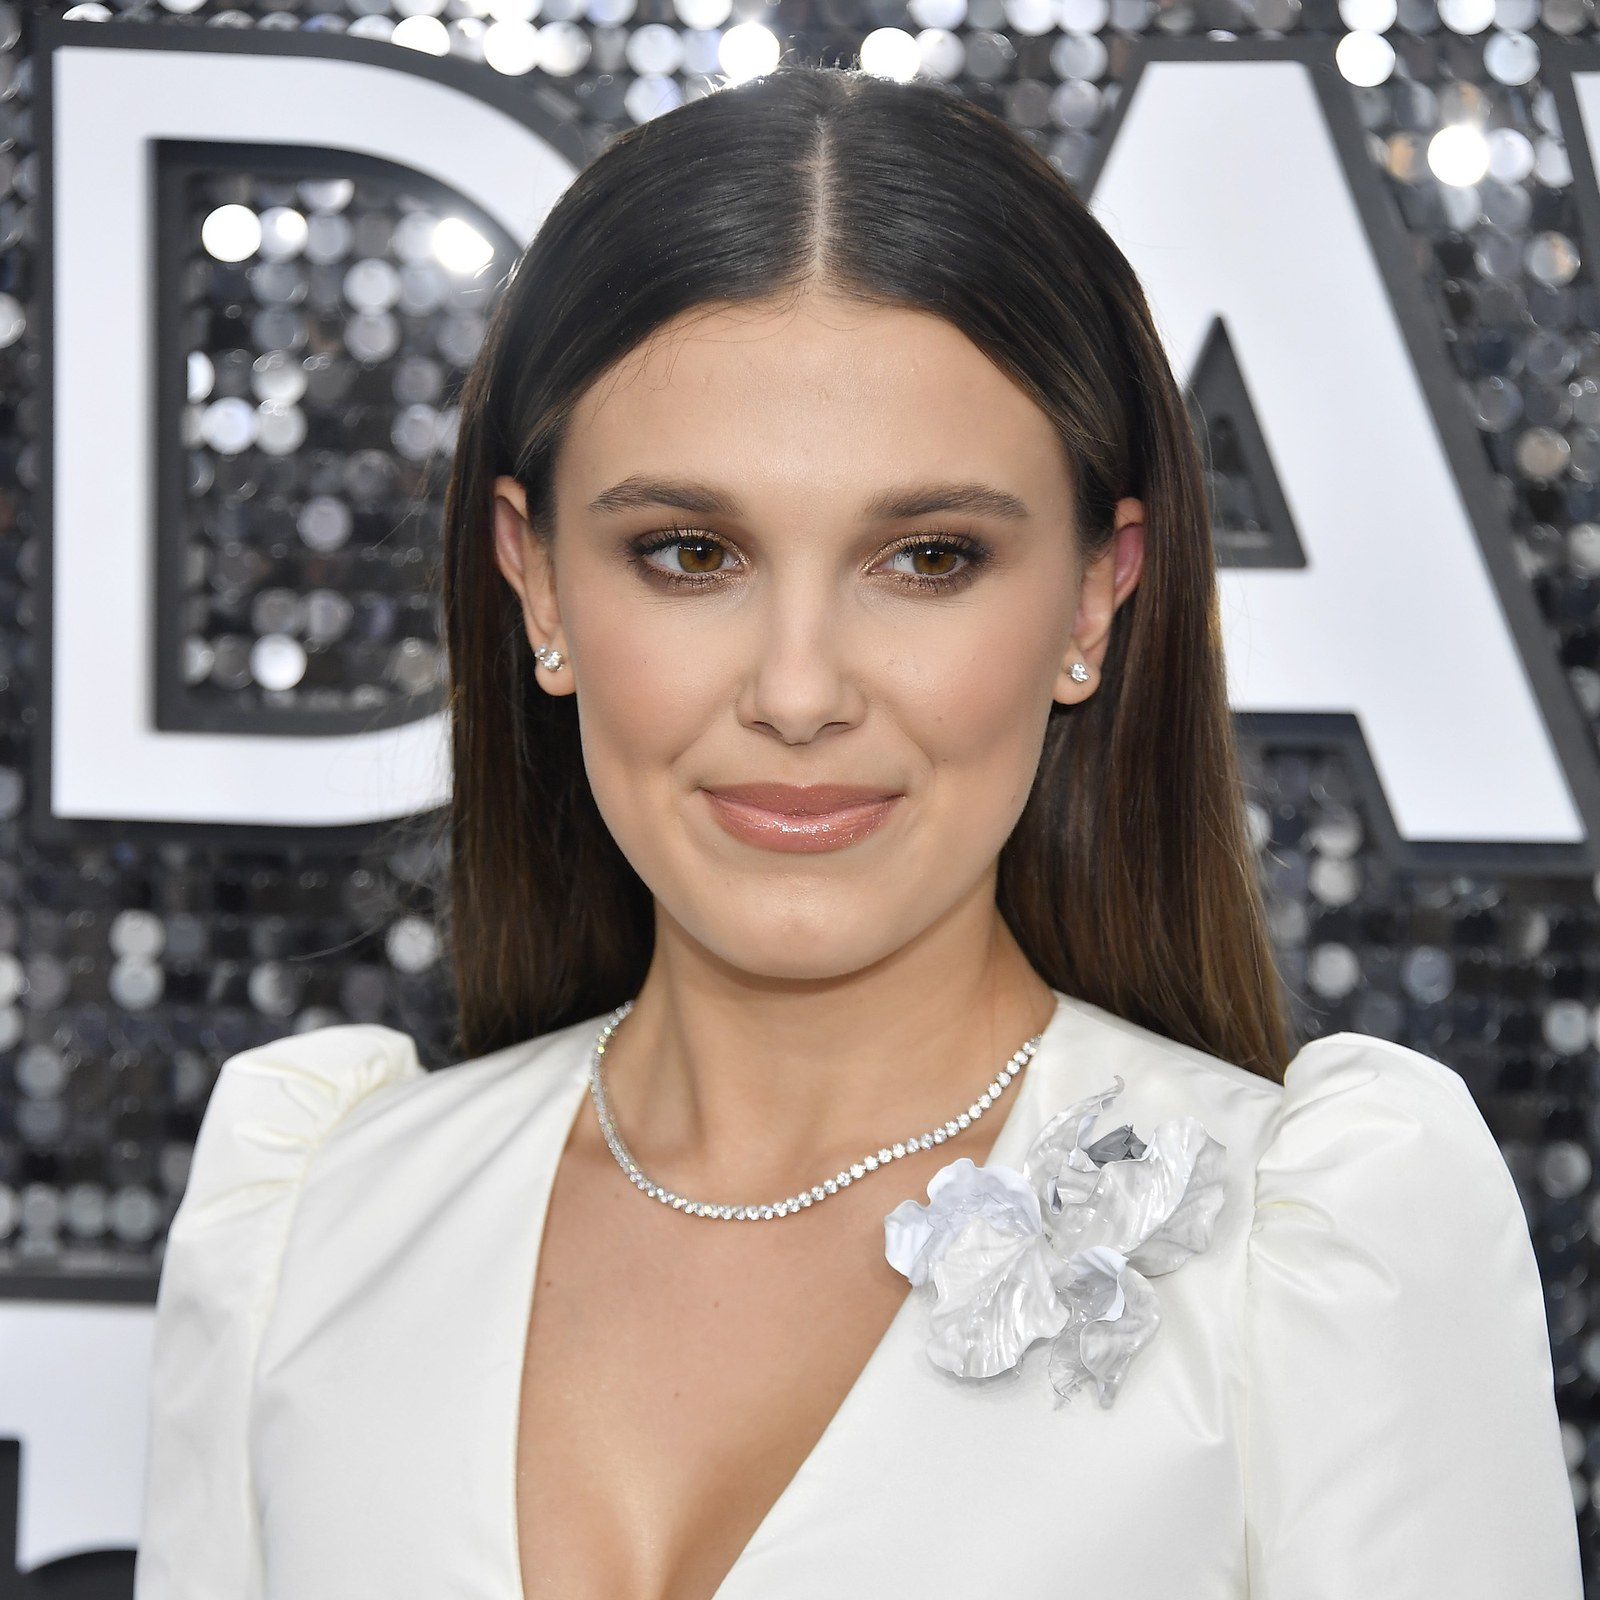 SAG Awards 2020 beauty millie bobby brown